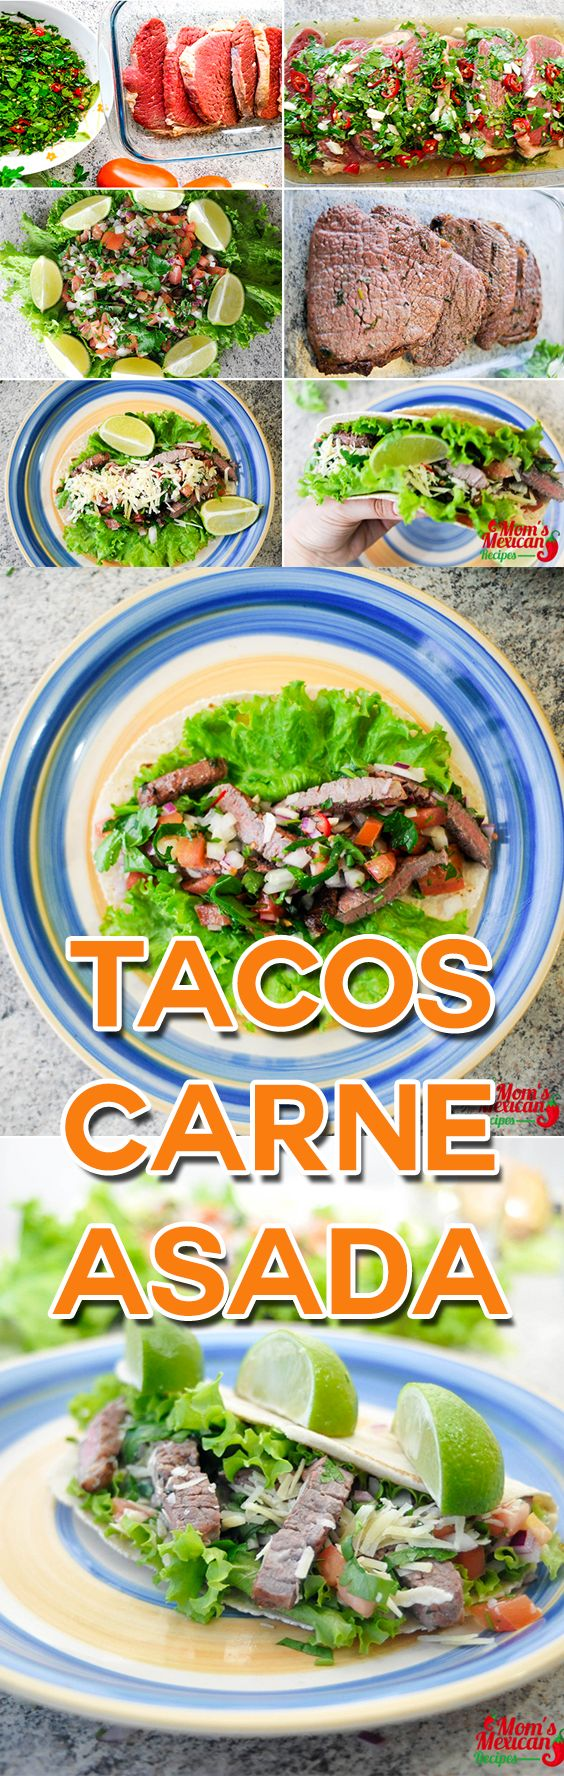 . The Tacos Carne Asada Recipe is made of Flank steak marinated in Mojo paste.  And adding Pico de Gallo in the mixture gives you the feeling of eating delicious authentic Mexican food.  Meat should be marinated overnight before cooked on a grill over charcoal.